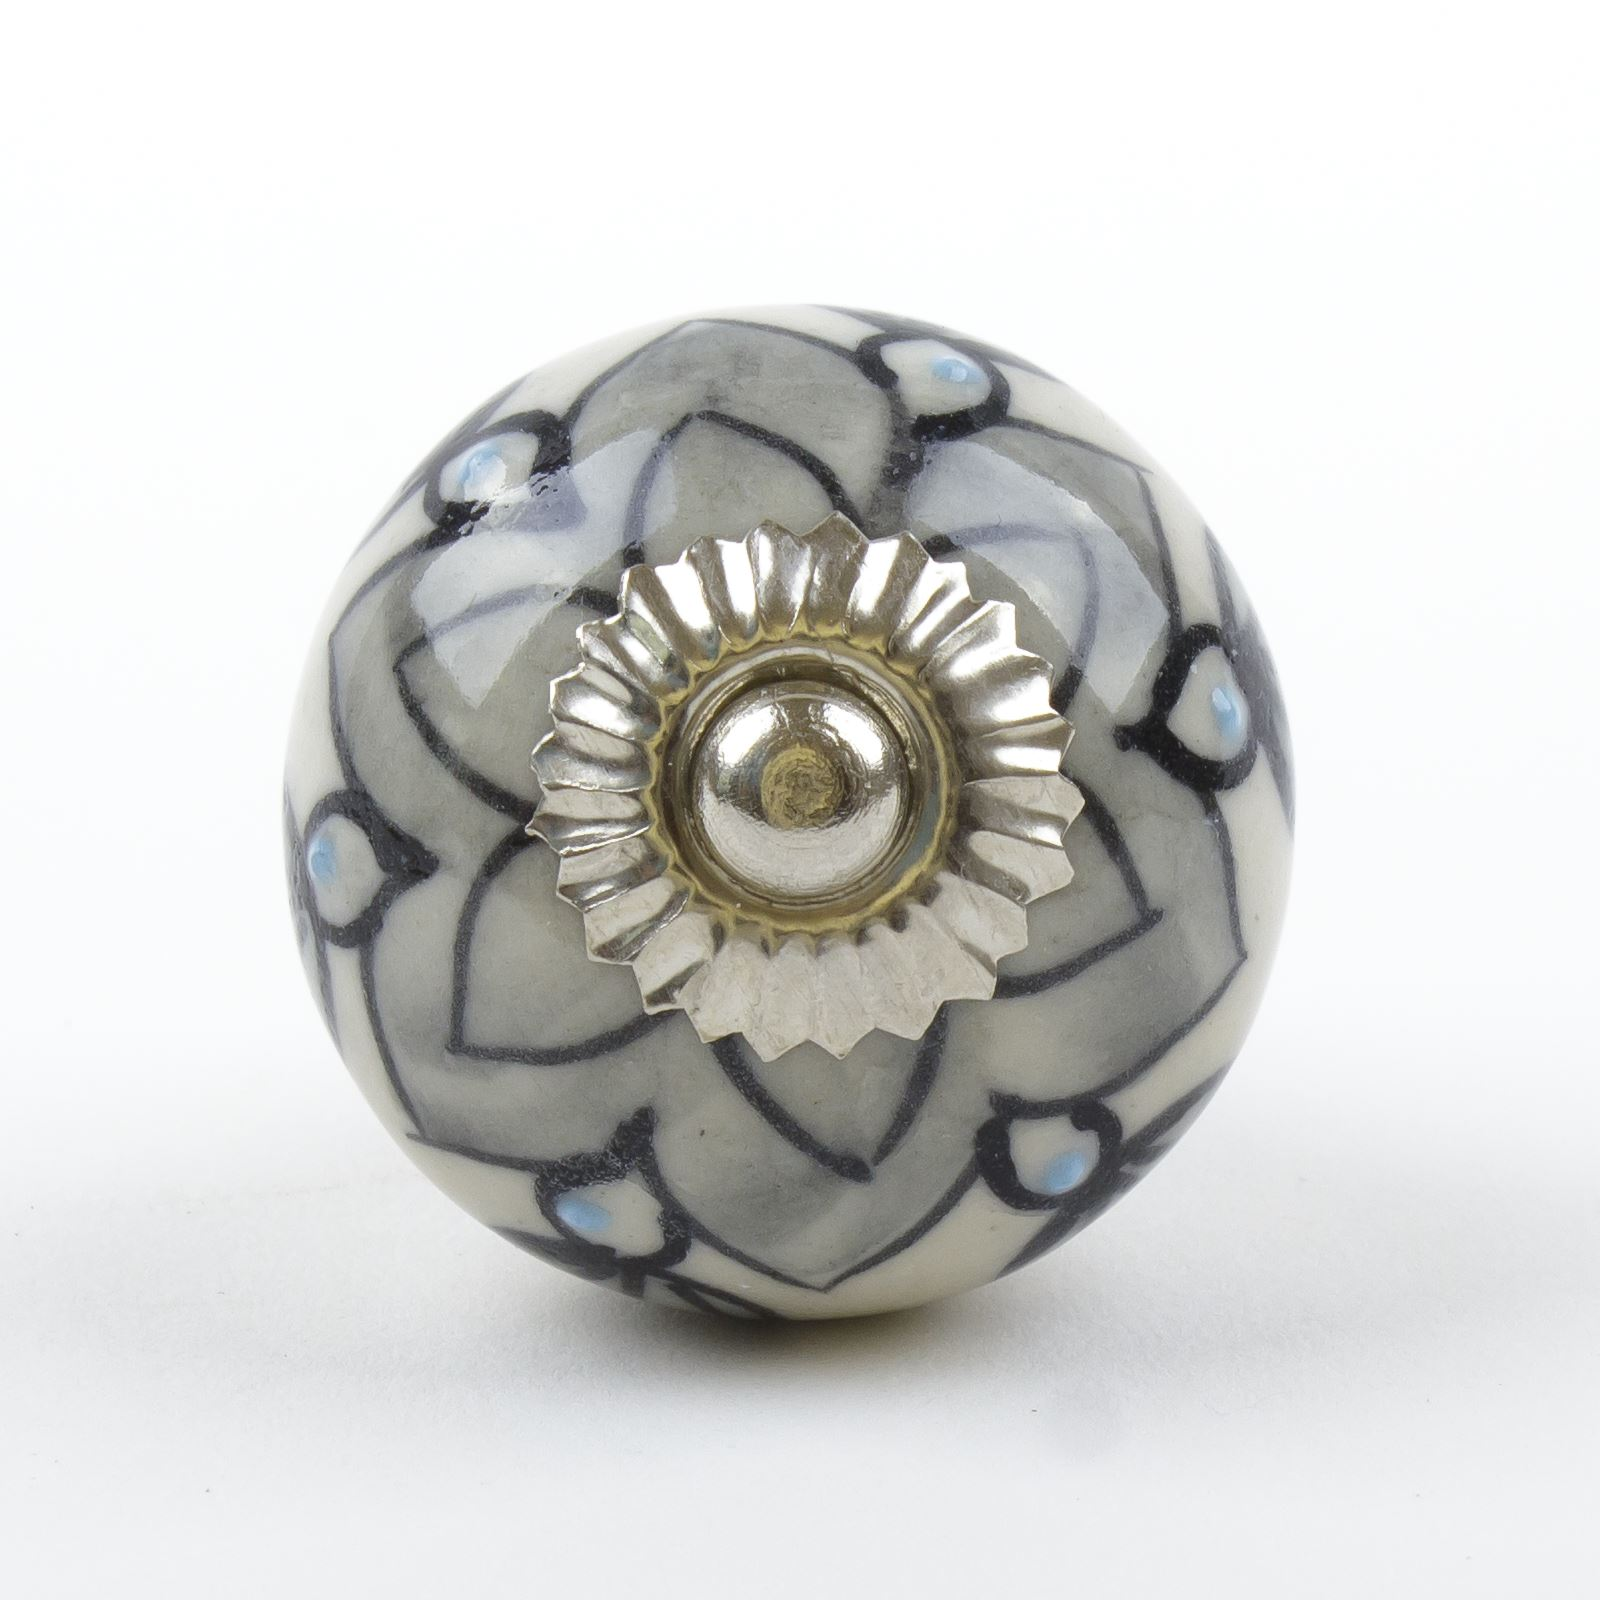 Black White Silver Grey Ceramic Door Knobs Handles